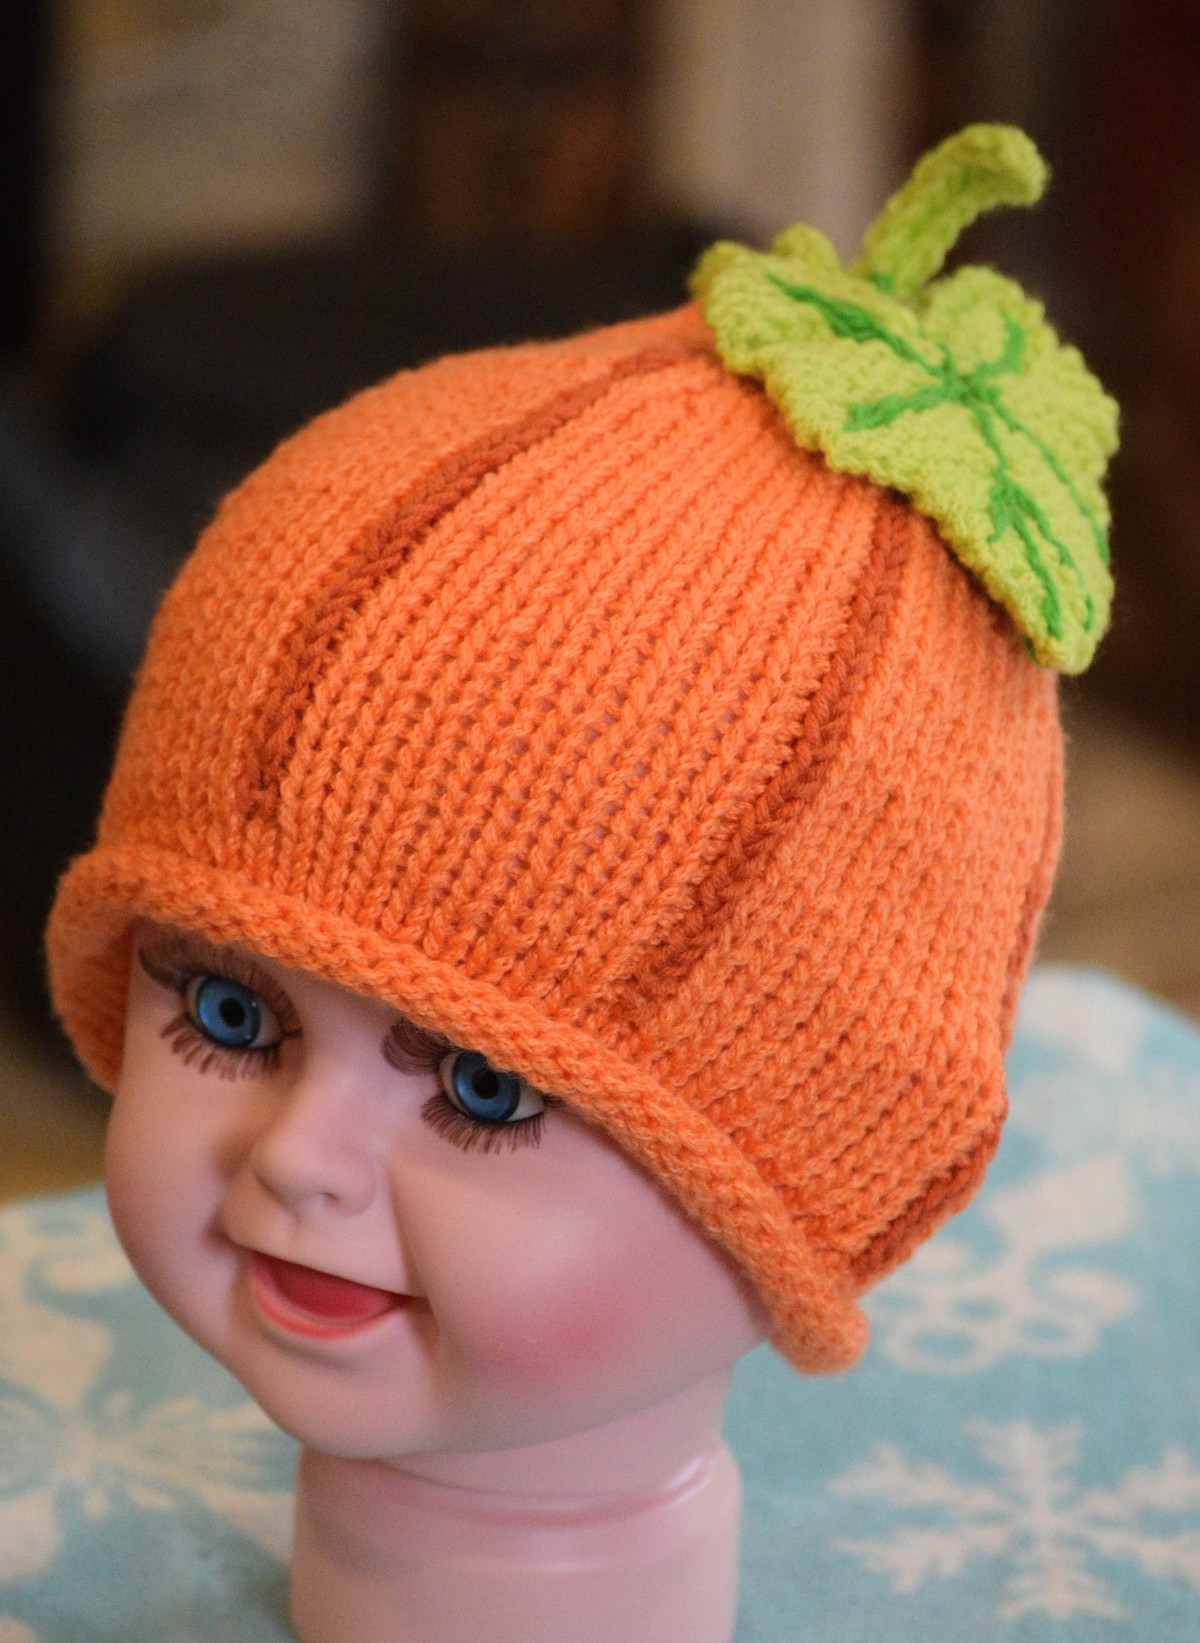 cute pumpkin hat for your baby.  Free knitting pattern!